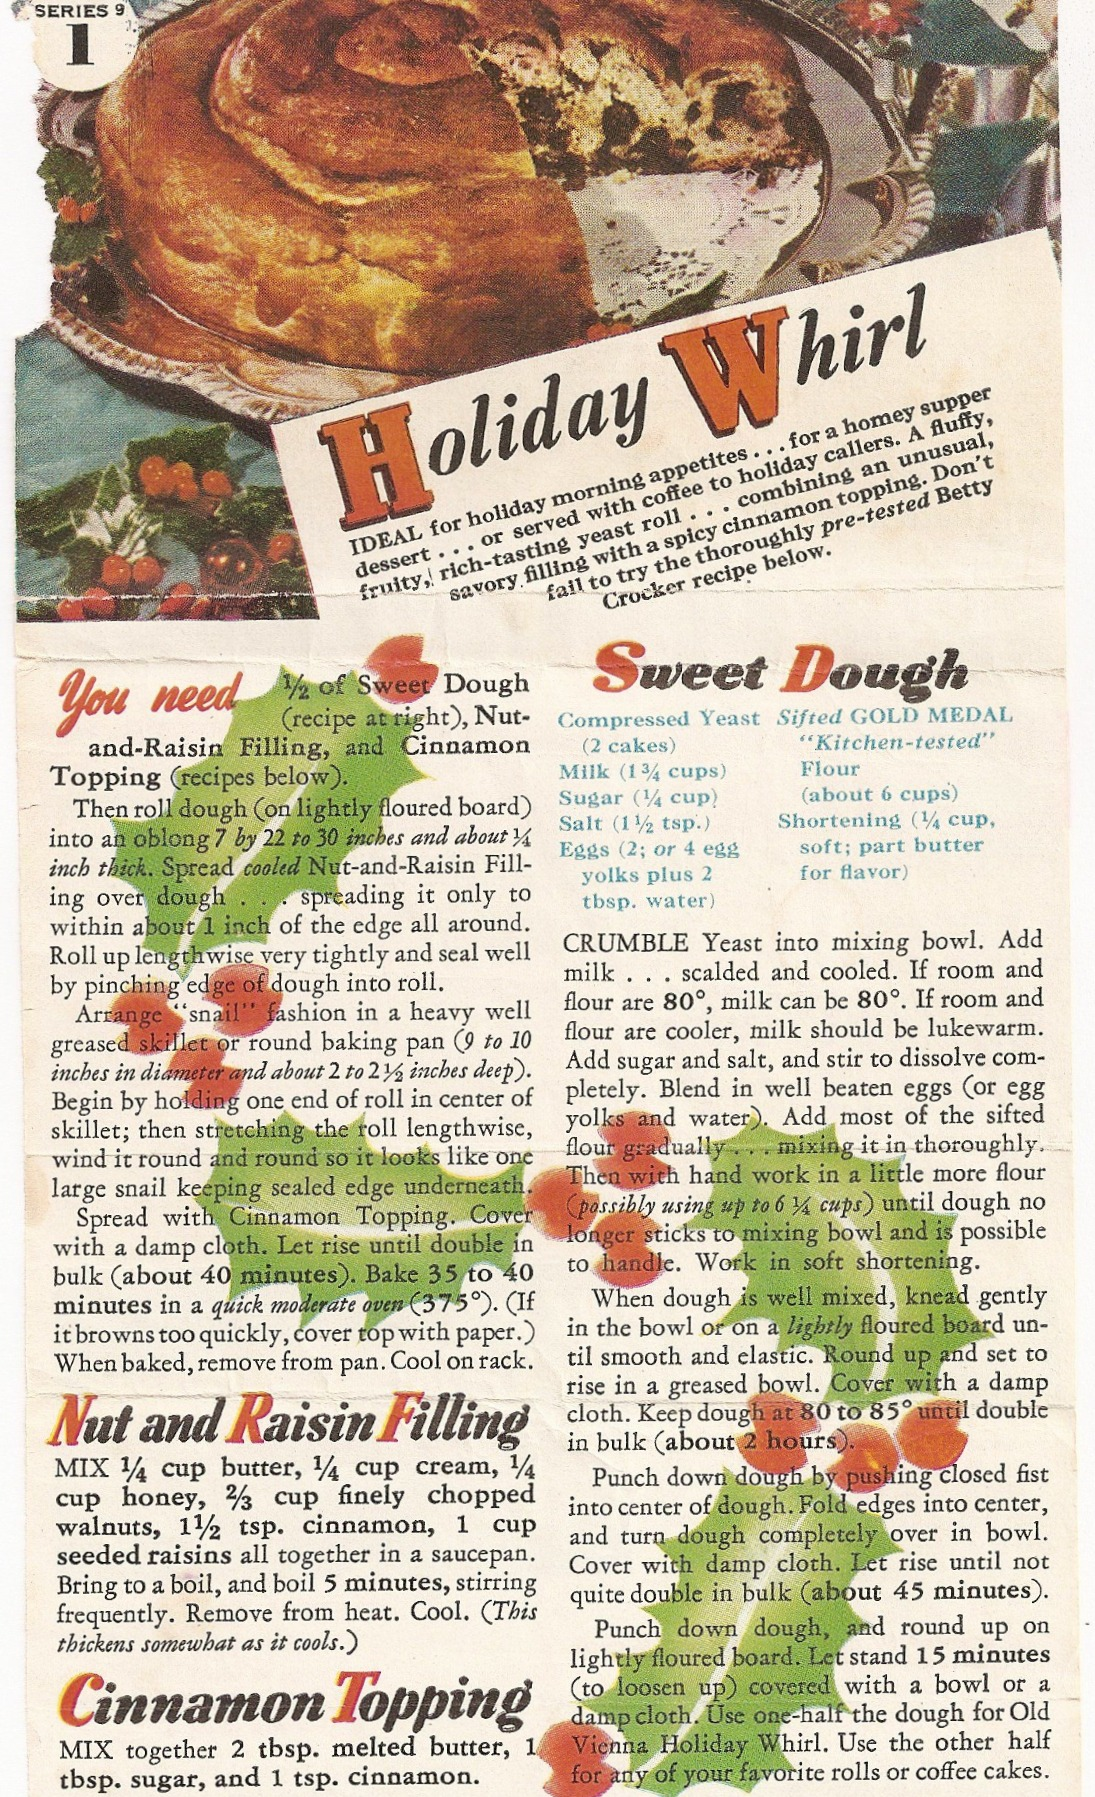 Vintage Recipe Card for Holiday Whirl Cinnamon Raisin Yeast Bread